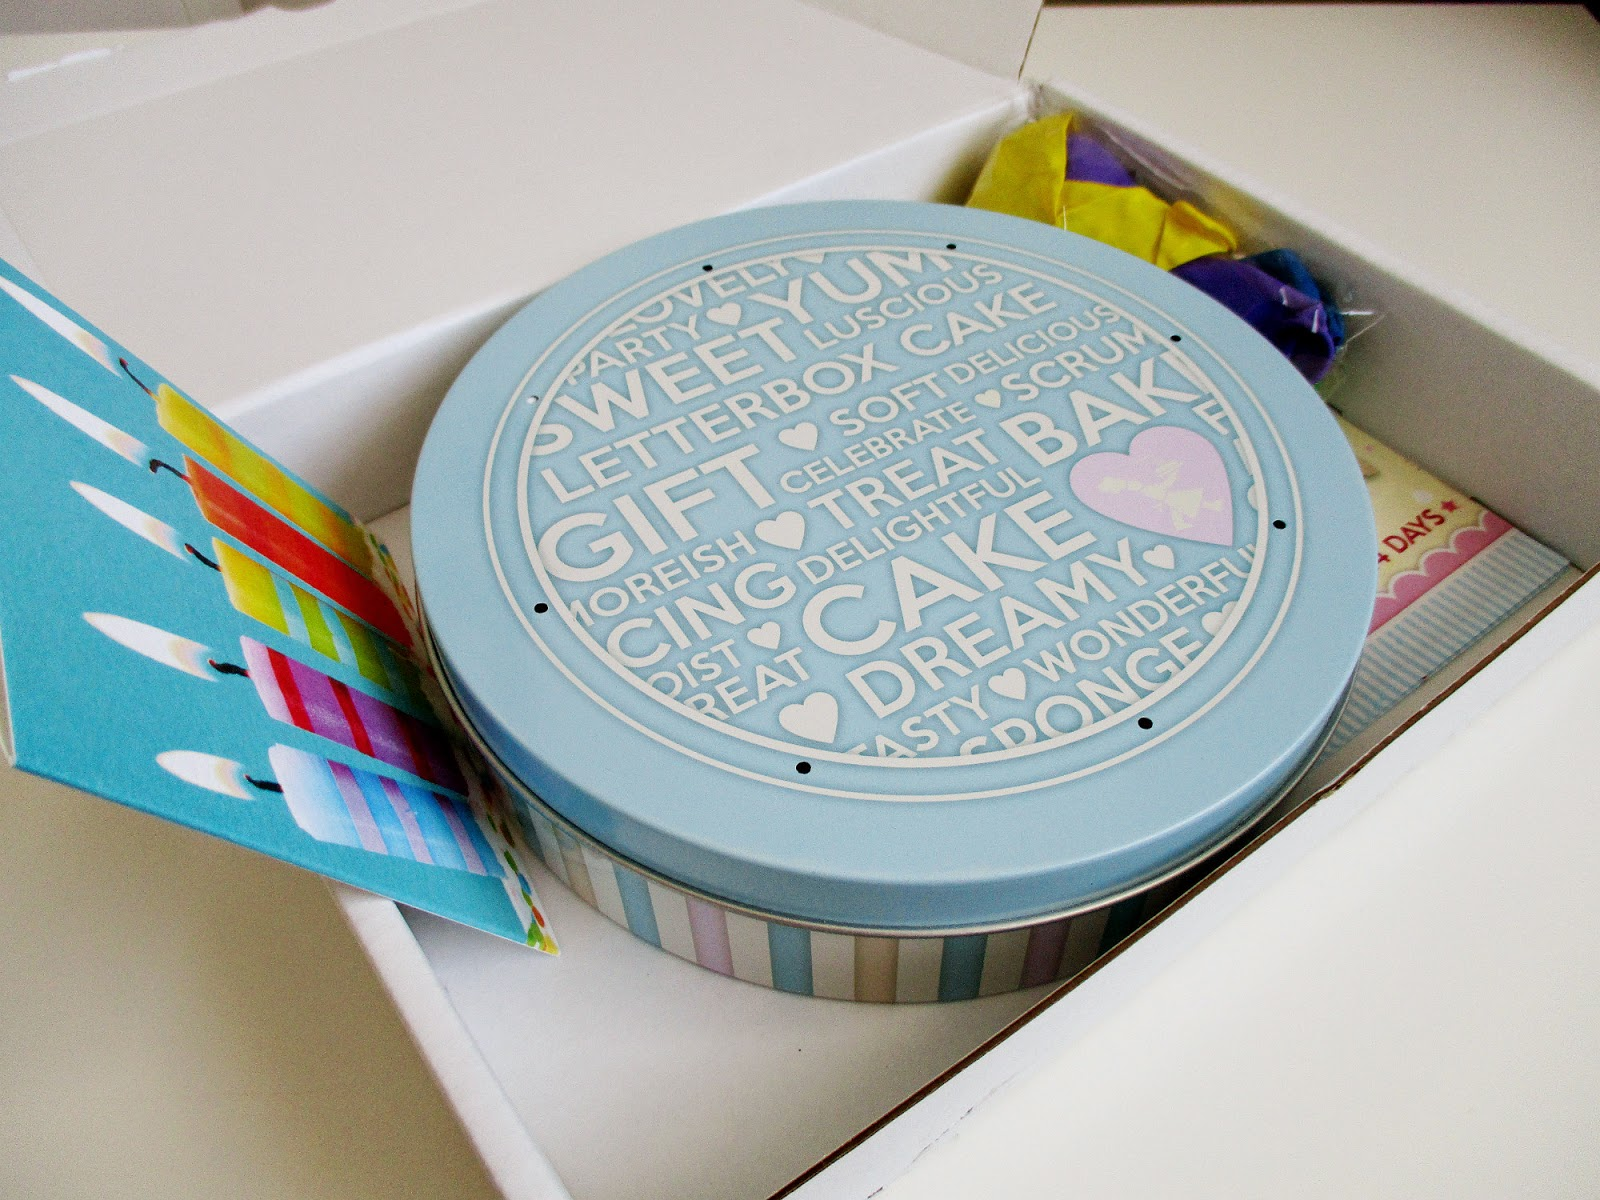 Baker Days Letterbox Cake Review